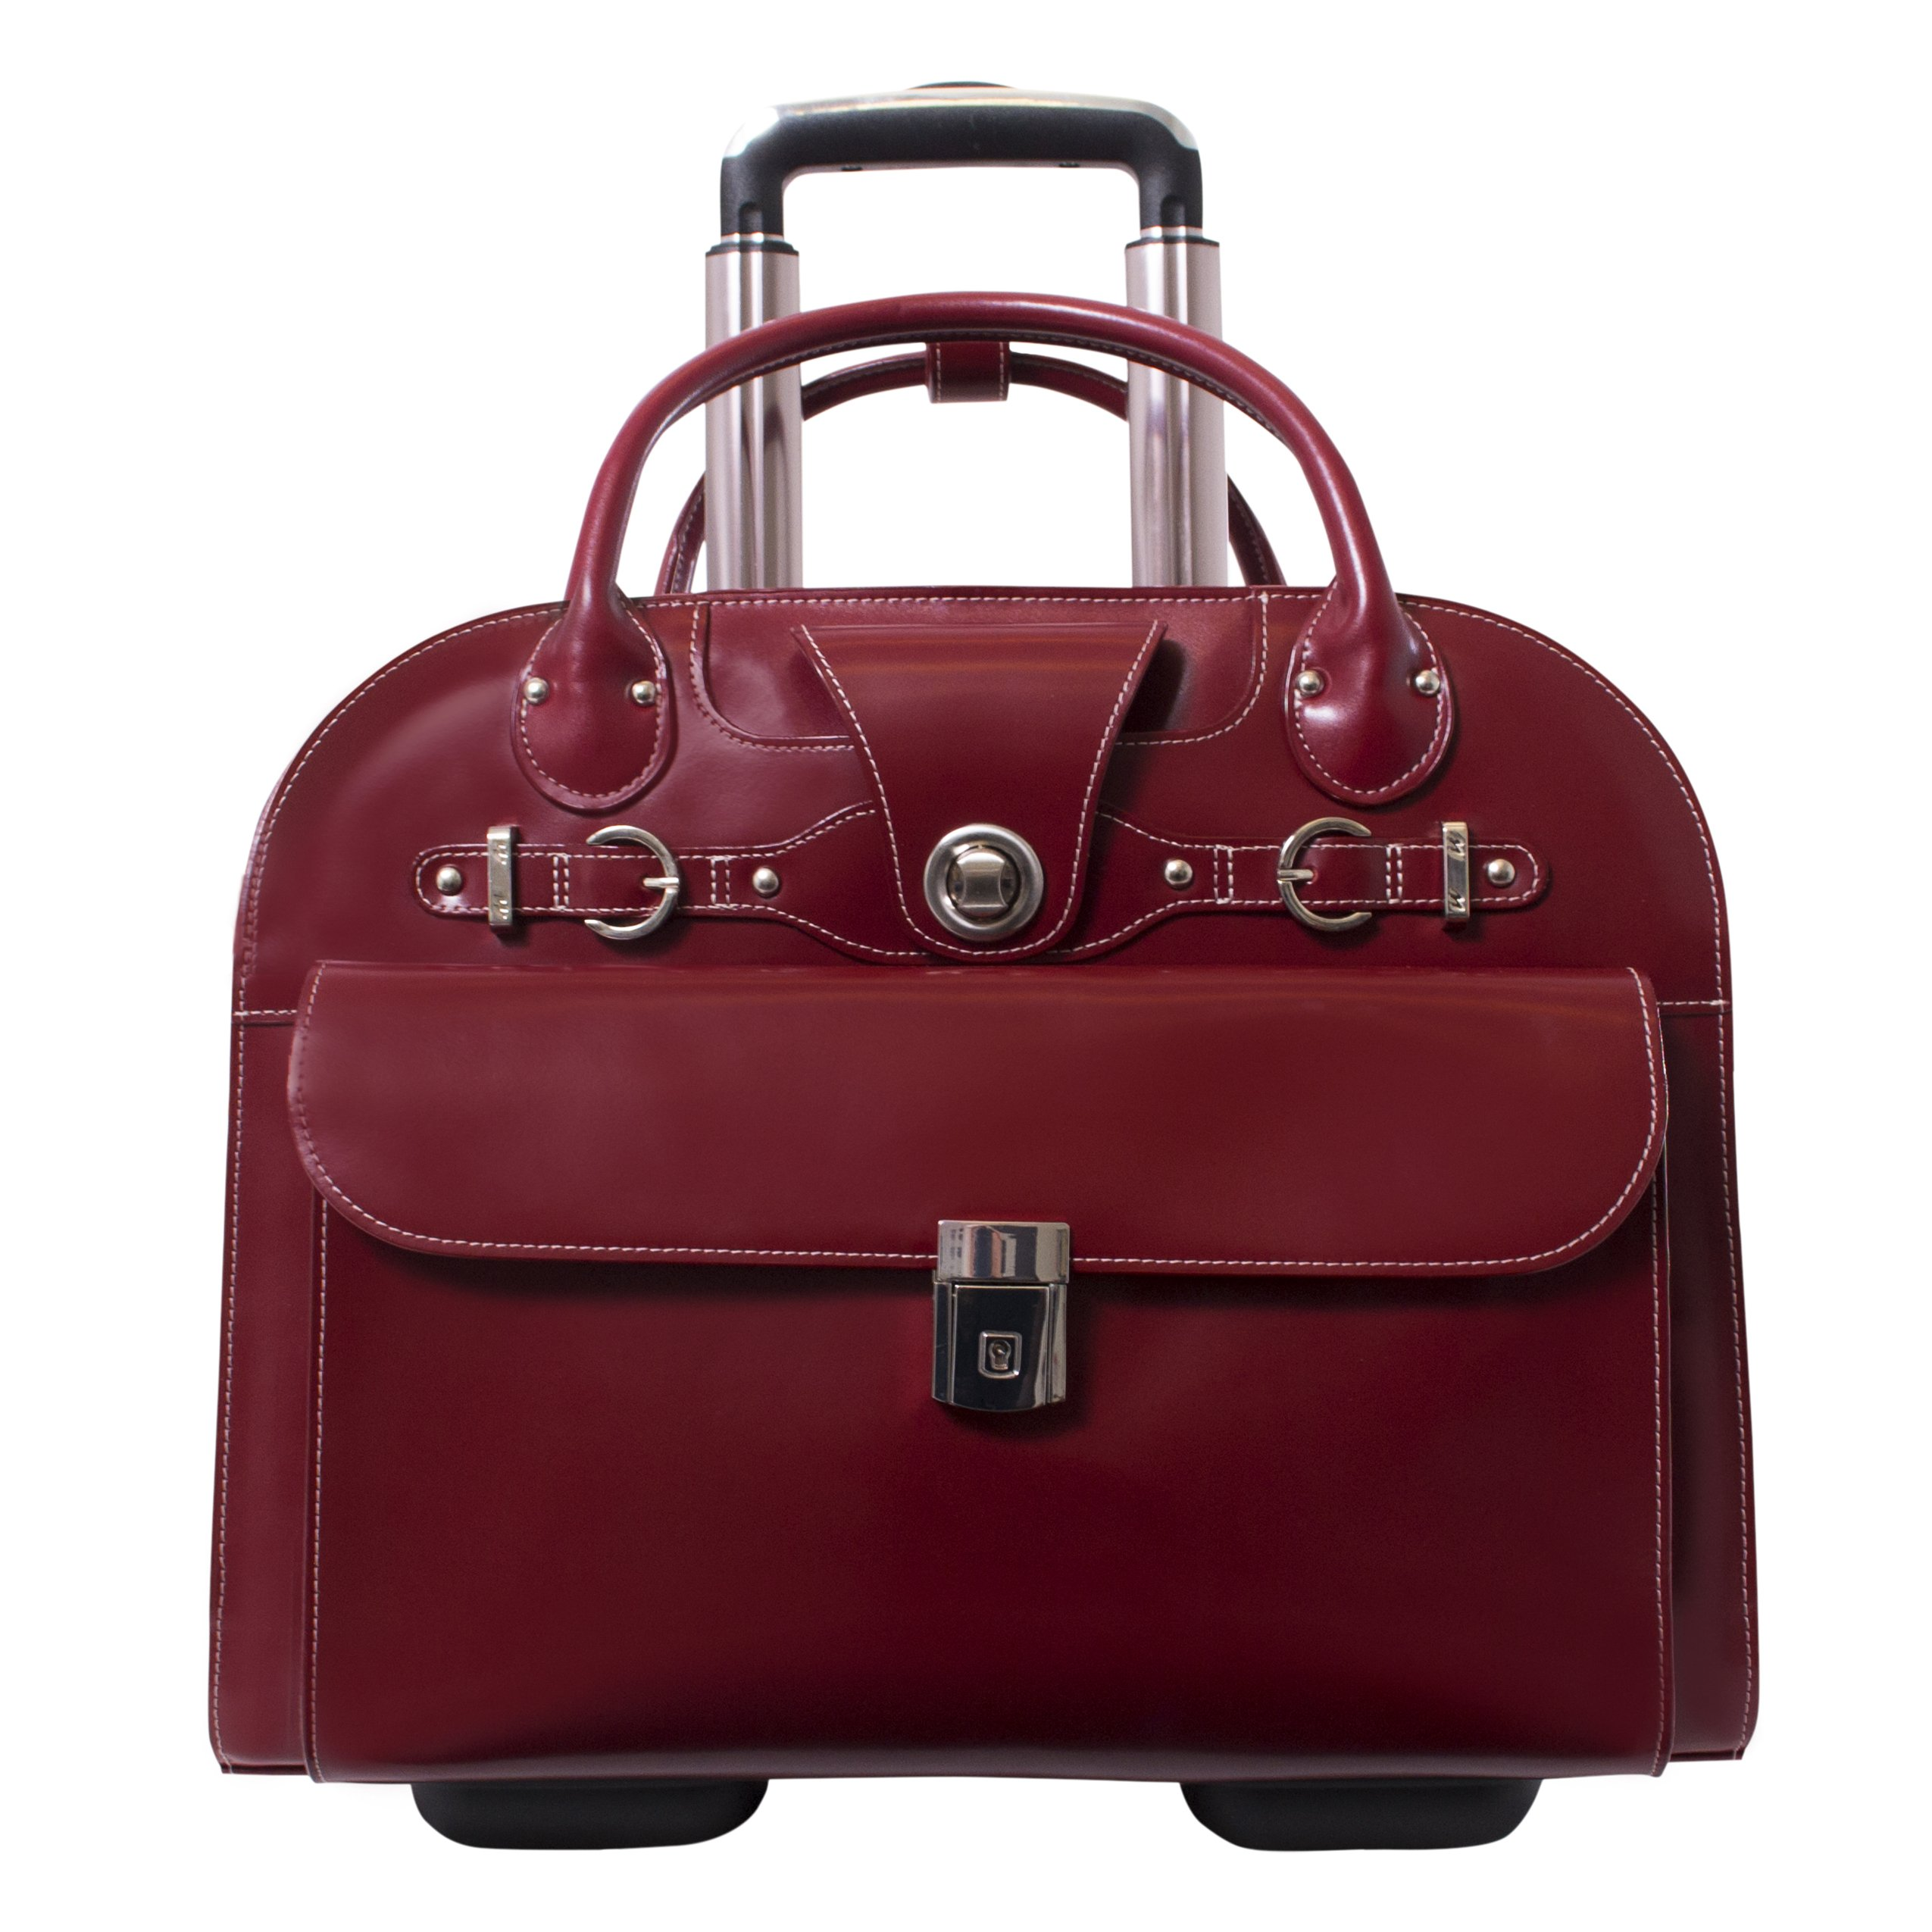 McKleinUSA Edgebrook [Personalized Initials Embossing] 15.4'' Leather Wheeled Ladies' Laptop Briefcase in Red by McKlein (Image #3)